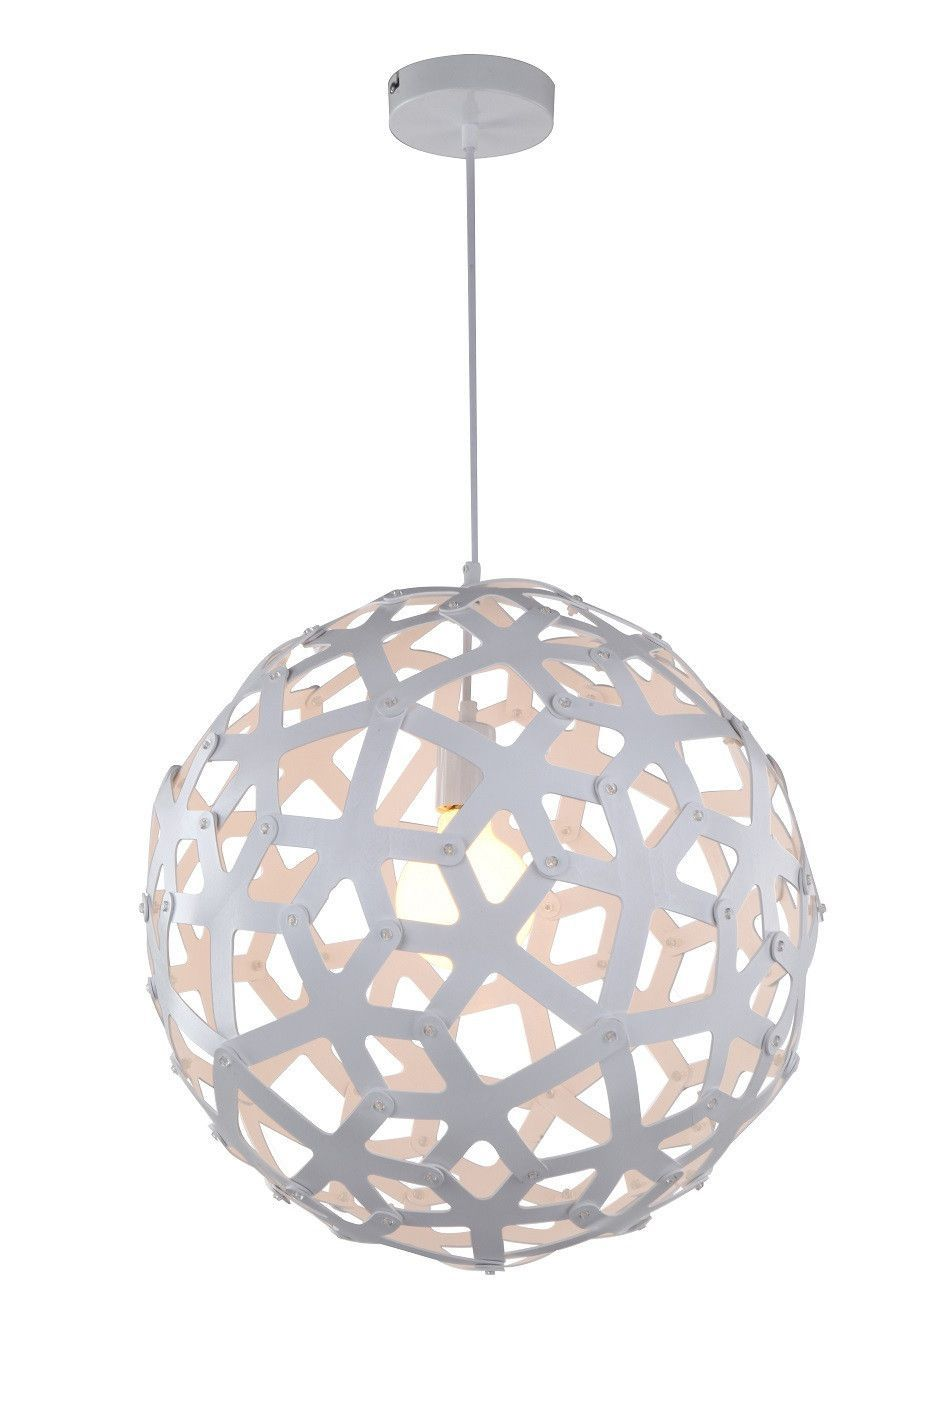 Large Wood Sphere Light Fixture White With Bulb Turned On